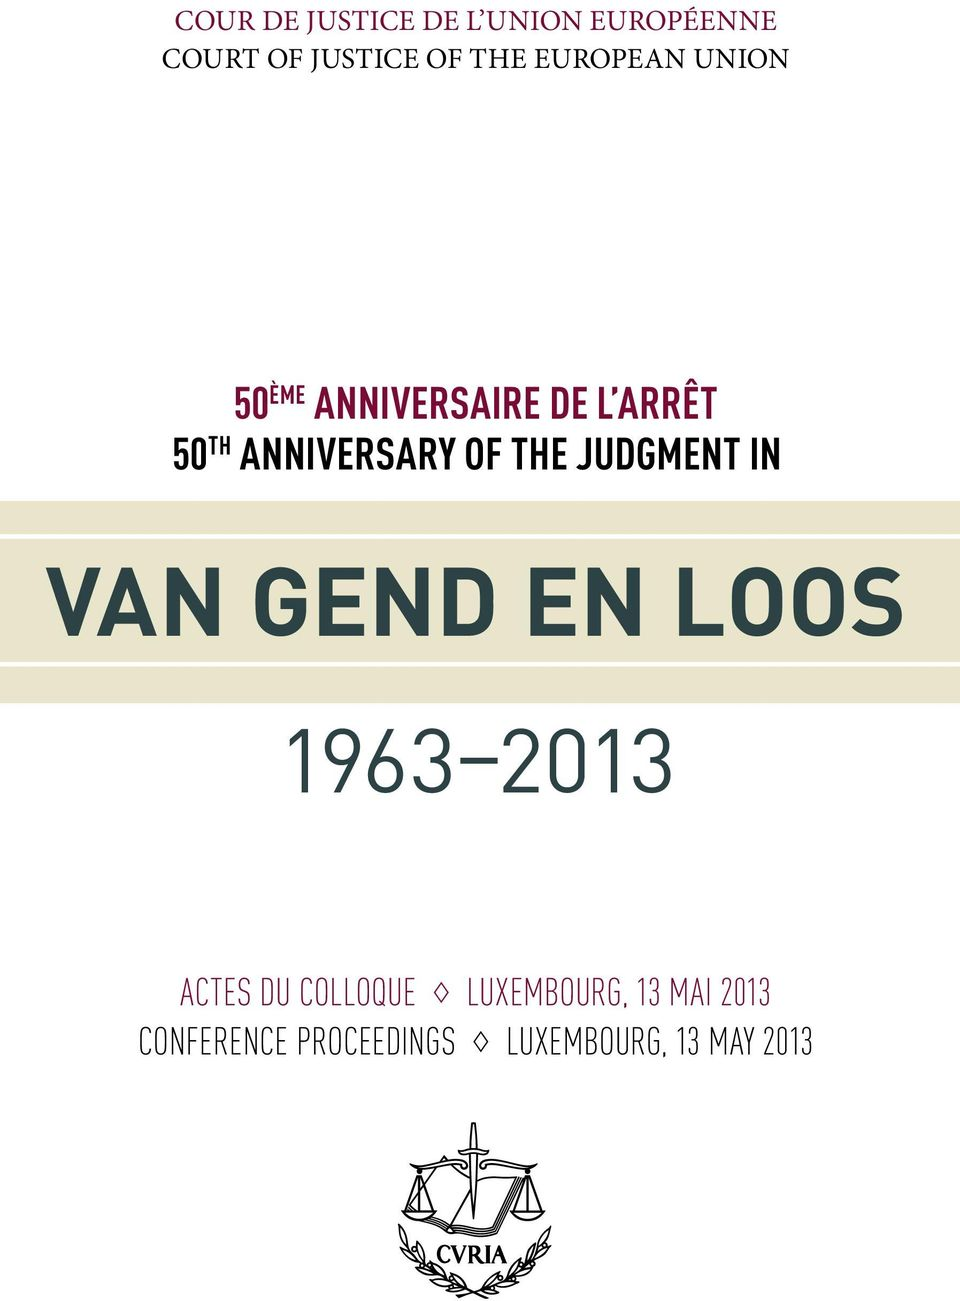 OF THE JUDGMENT IN VAN GEND EN LOOS 1963 2013 ACTES DU COLLOQUE